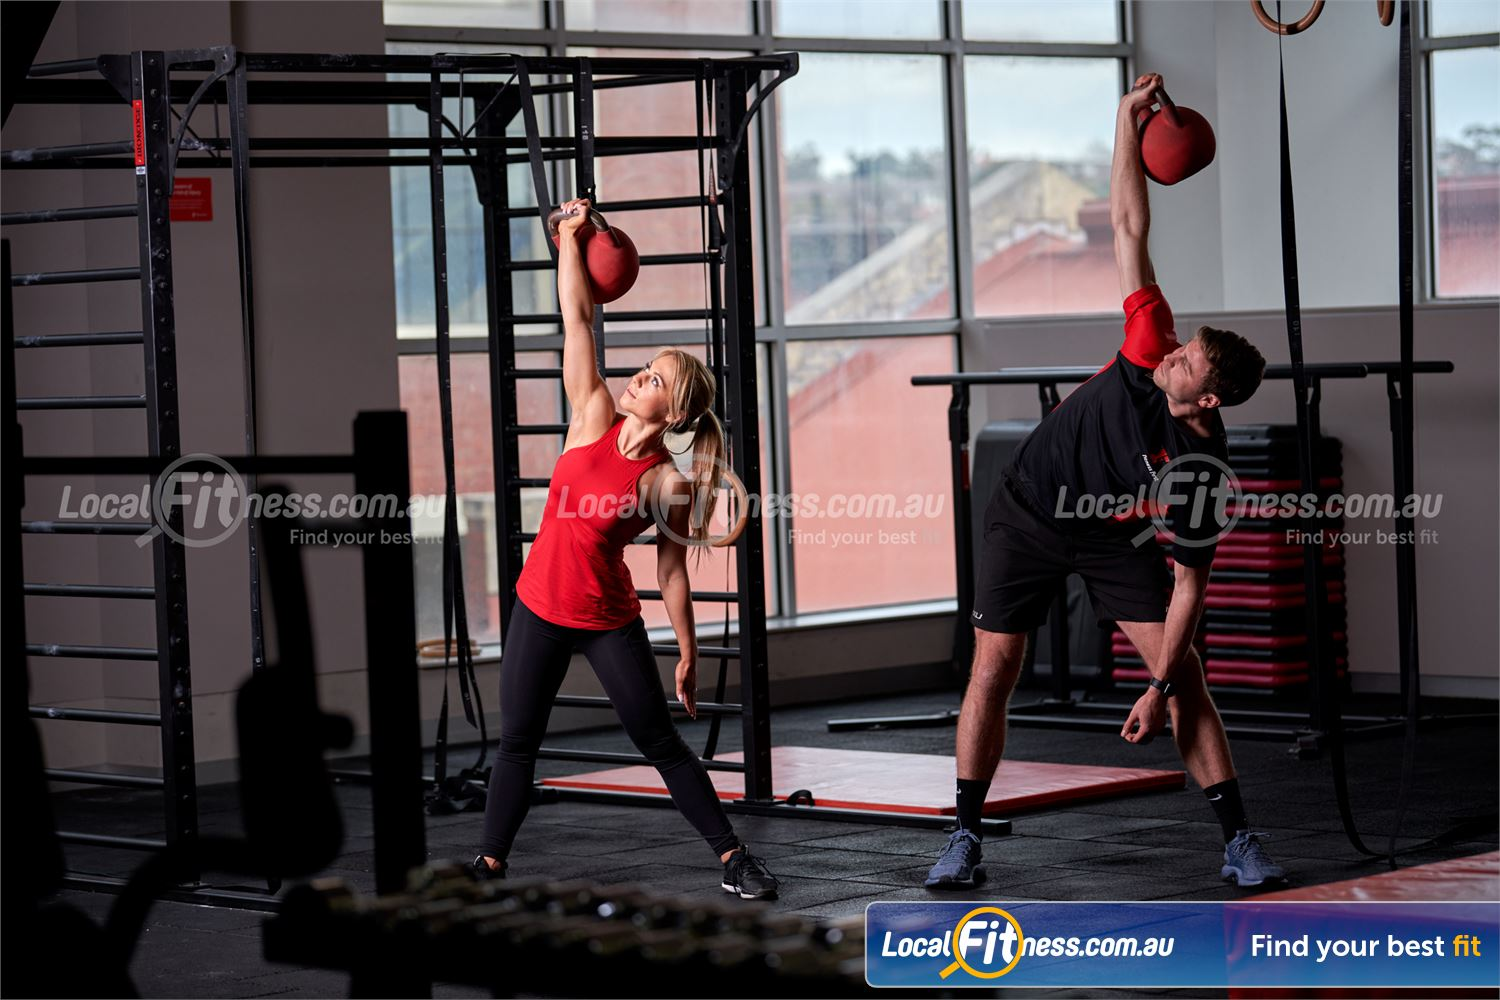 Fitness First Macquarie Near Denistone Get the right advice about training from our Macquarie Ryde personal trainers.